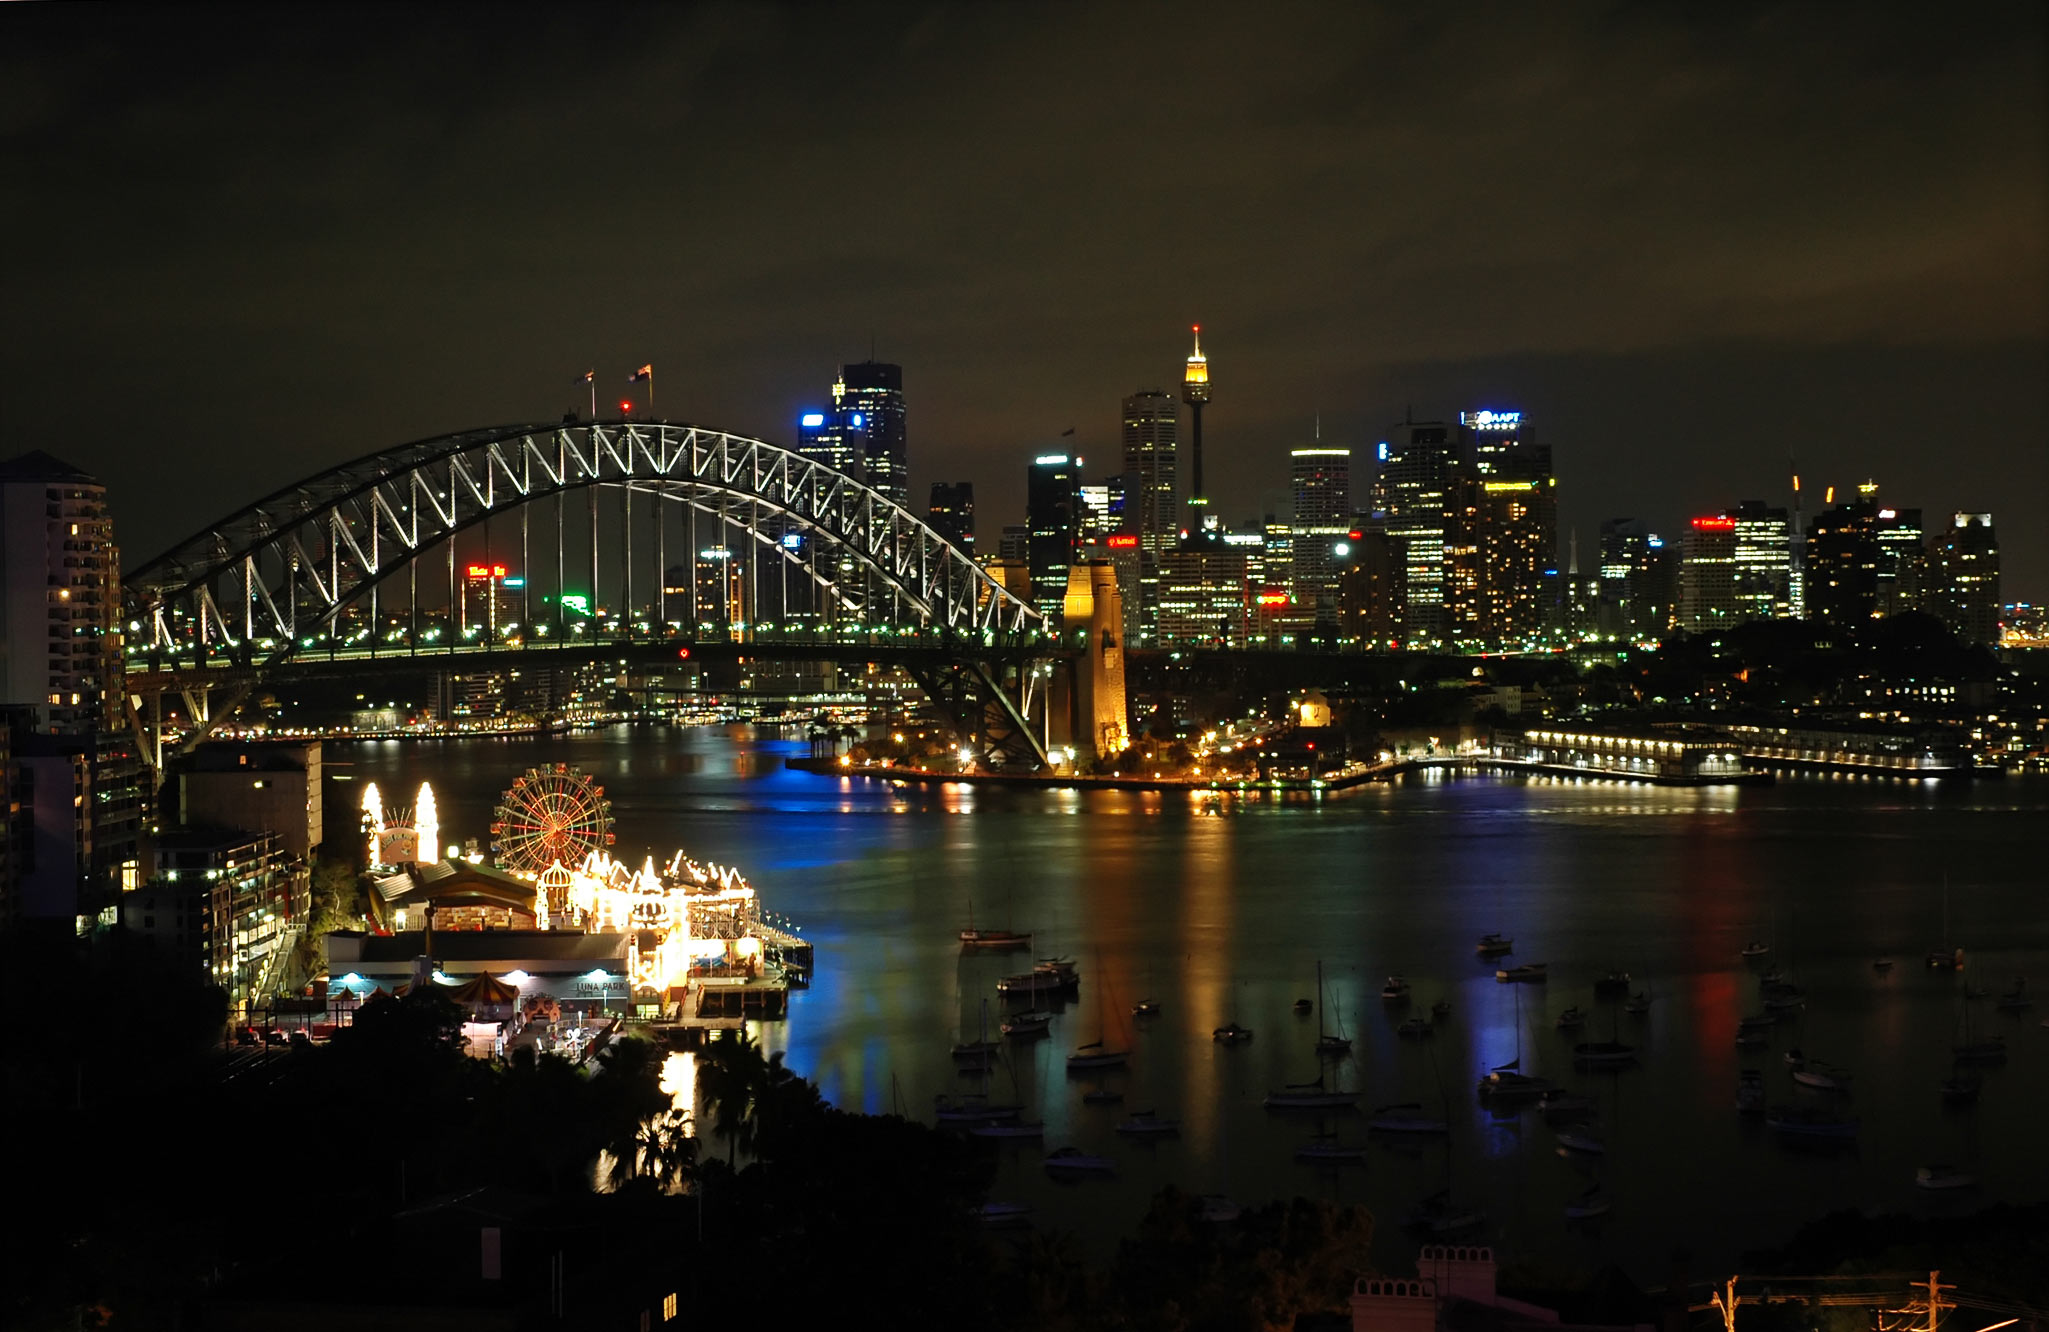 SydneyHarbor_1